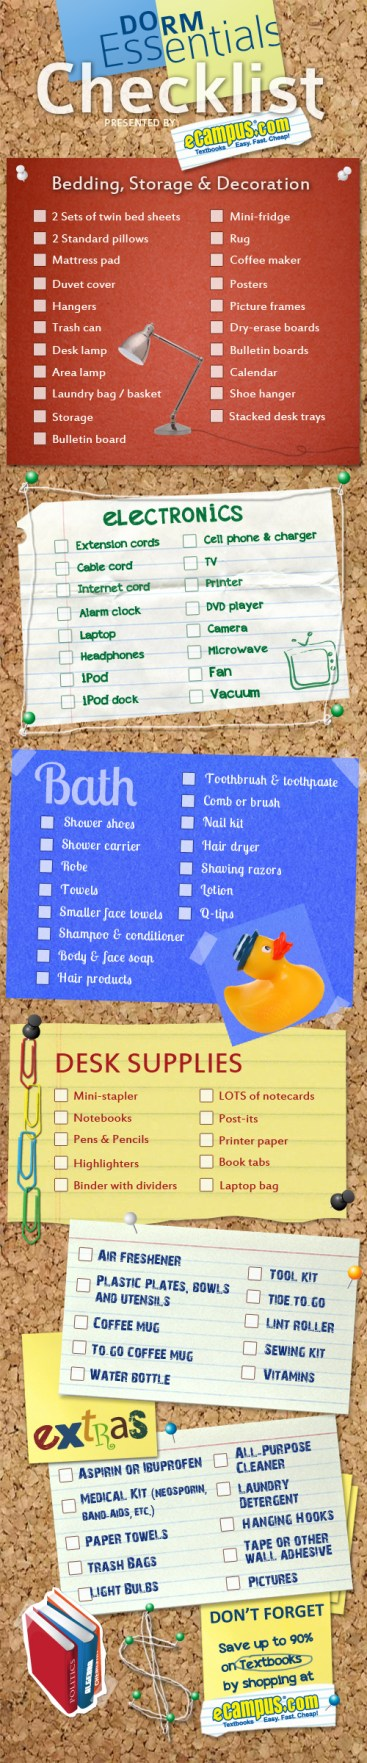 List Of Dorm Room Essentials Printable Checklist - Dorm room essentials